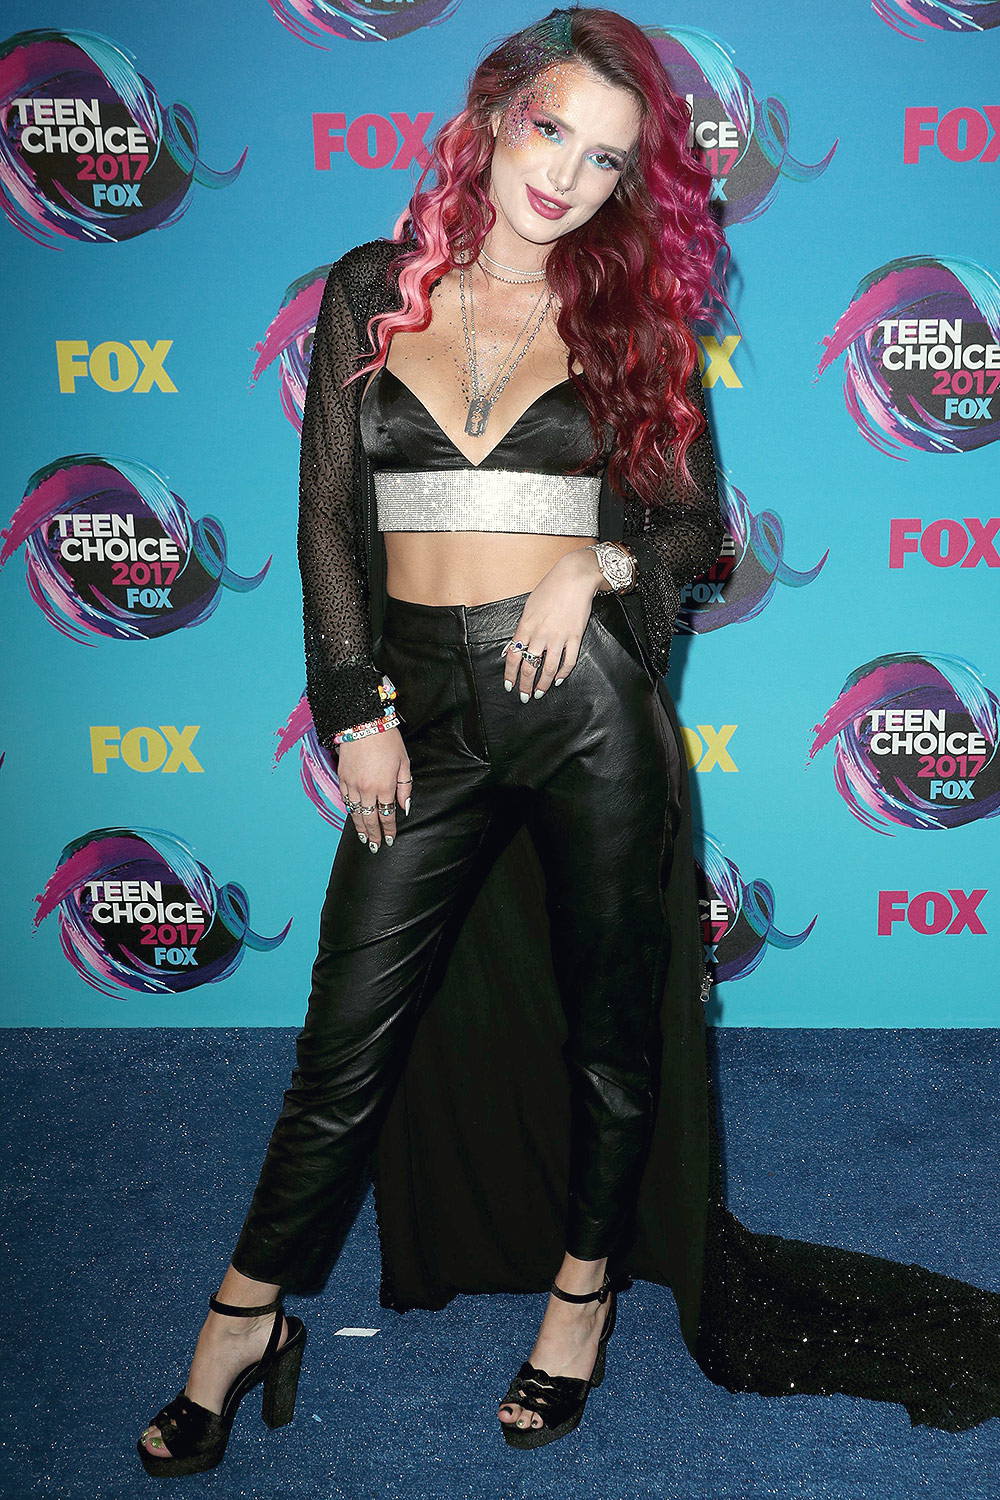 Bella Thorne attends 2017 Teen Choice Awards - Leather ...